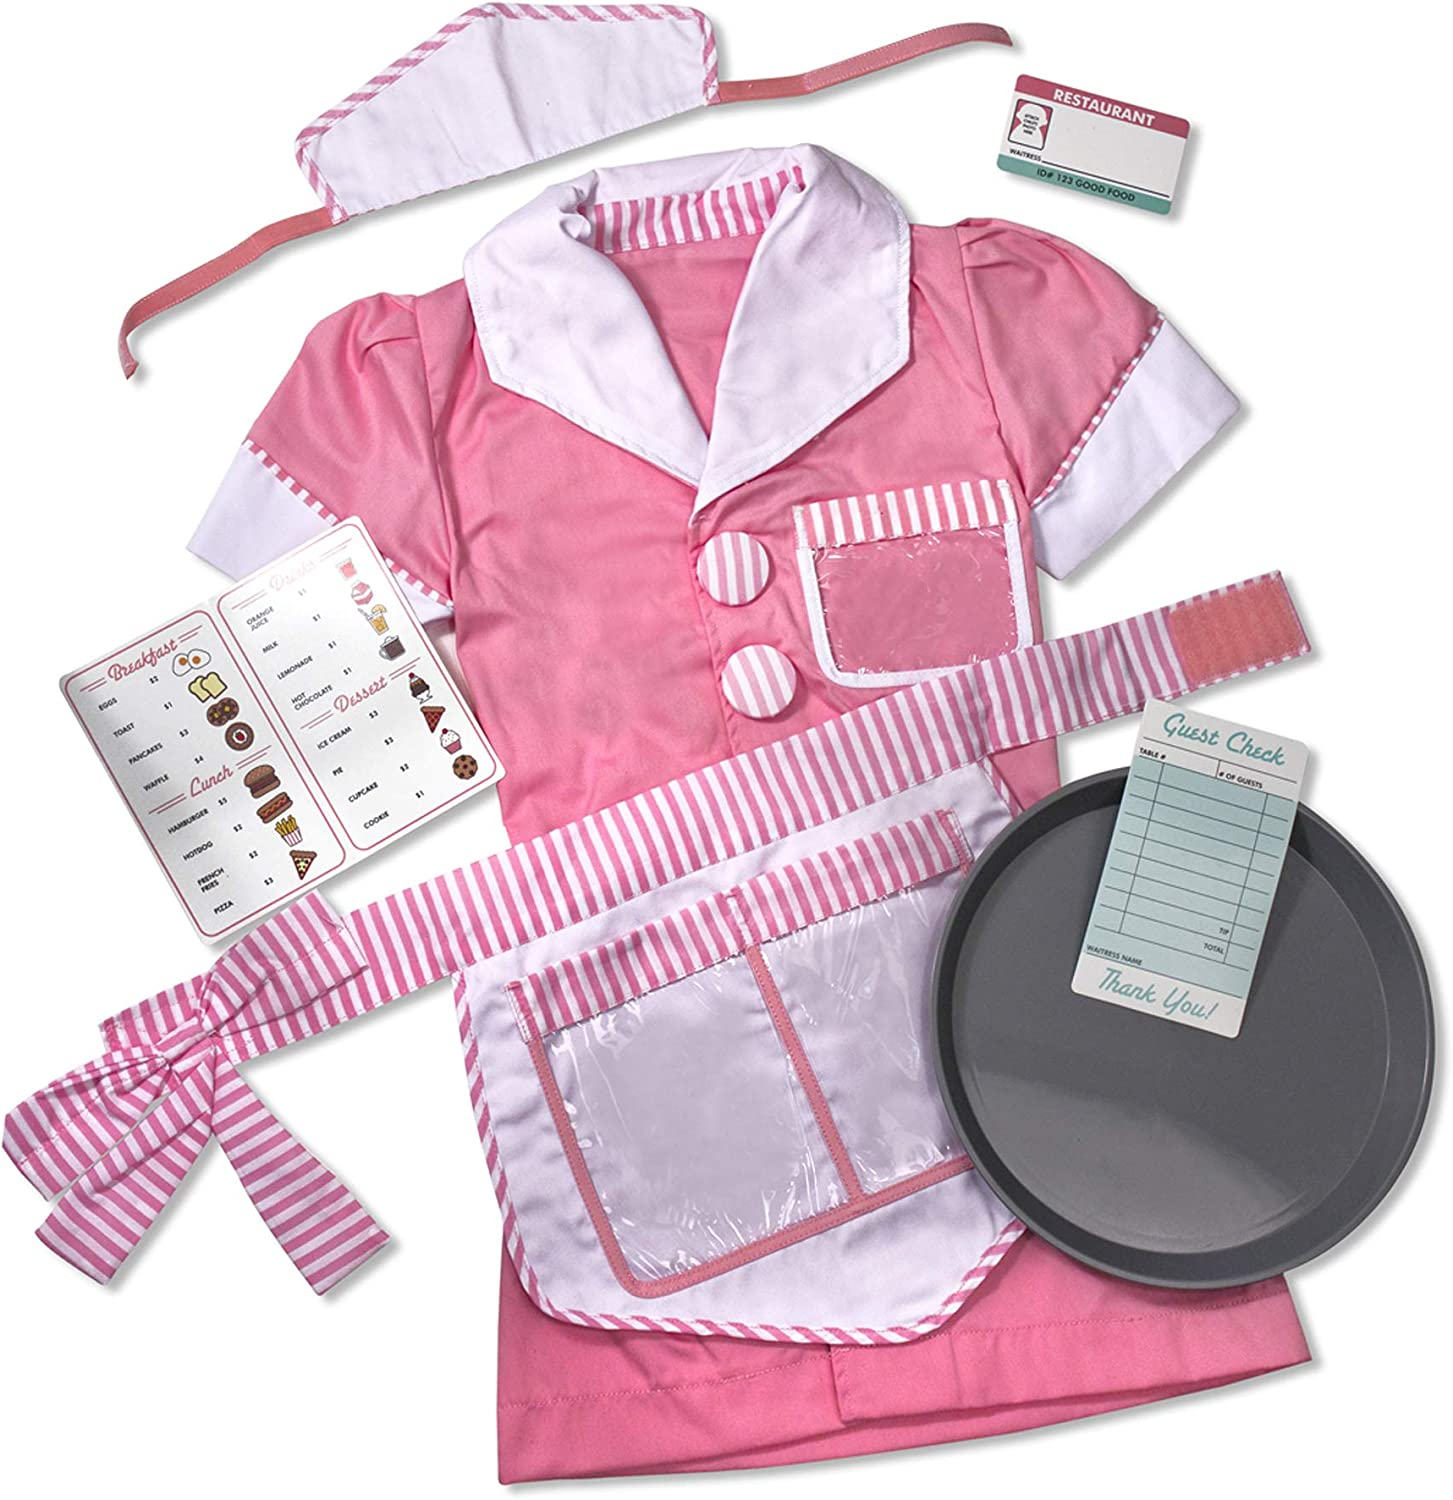 YuDanae Girls Waitress Costume Set Chef Role Play Cooking Playset with Apron for Kids Toddler Girls Aged 3-7